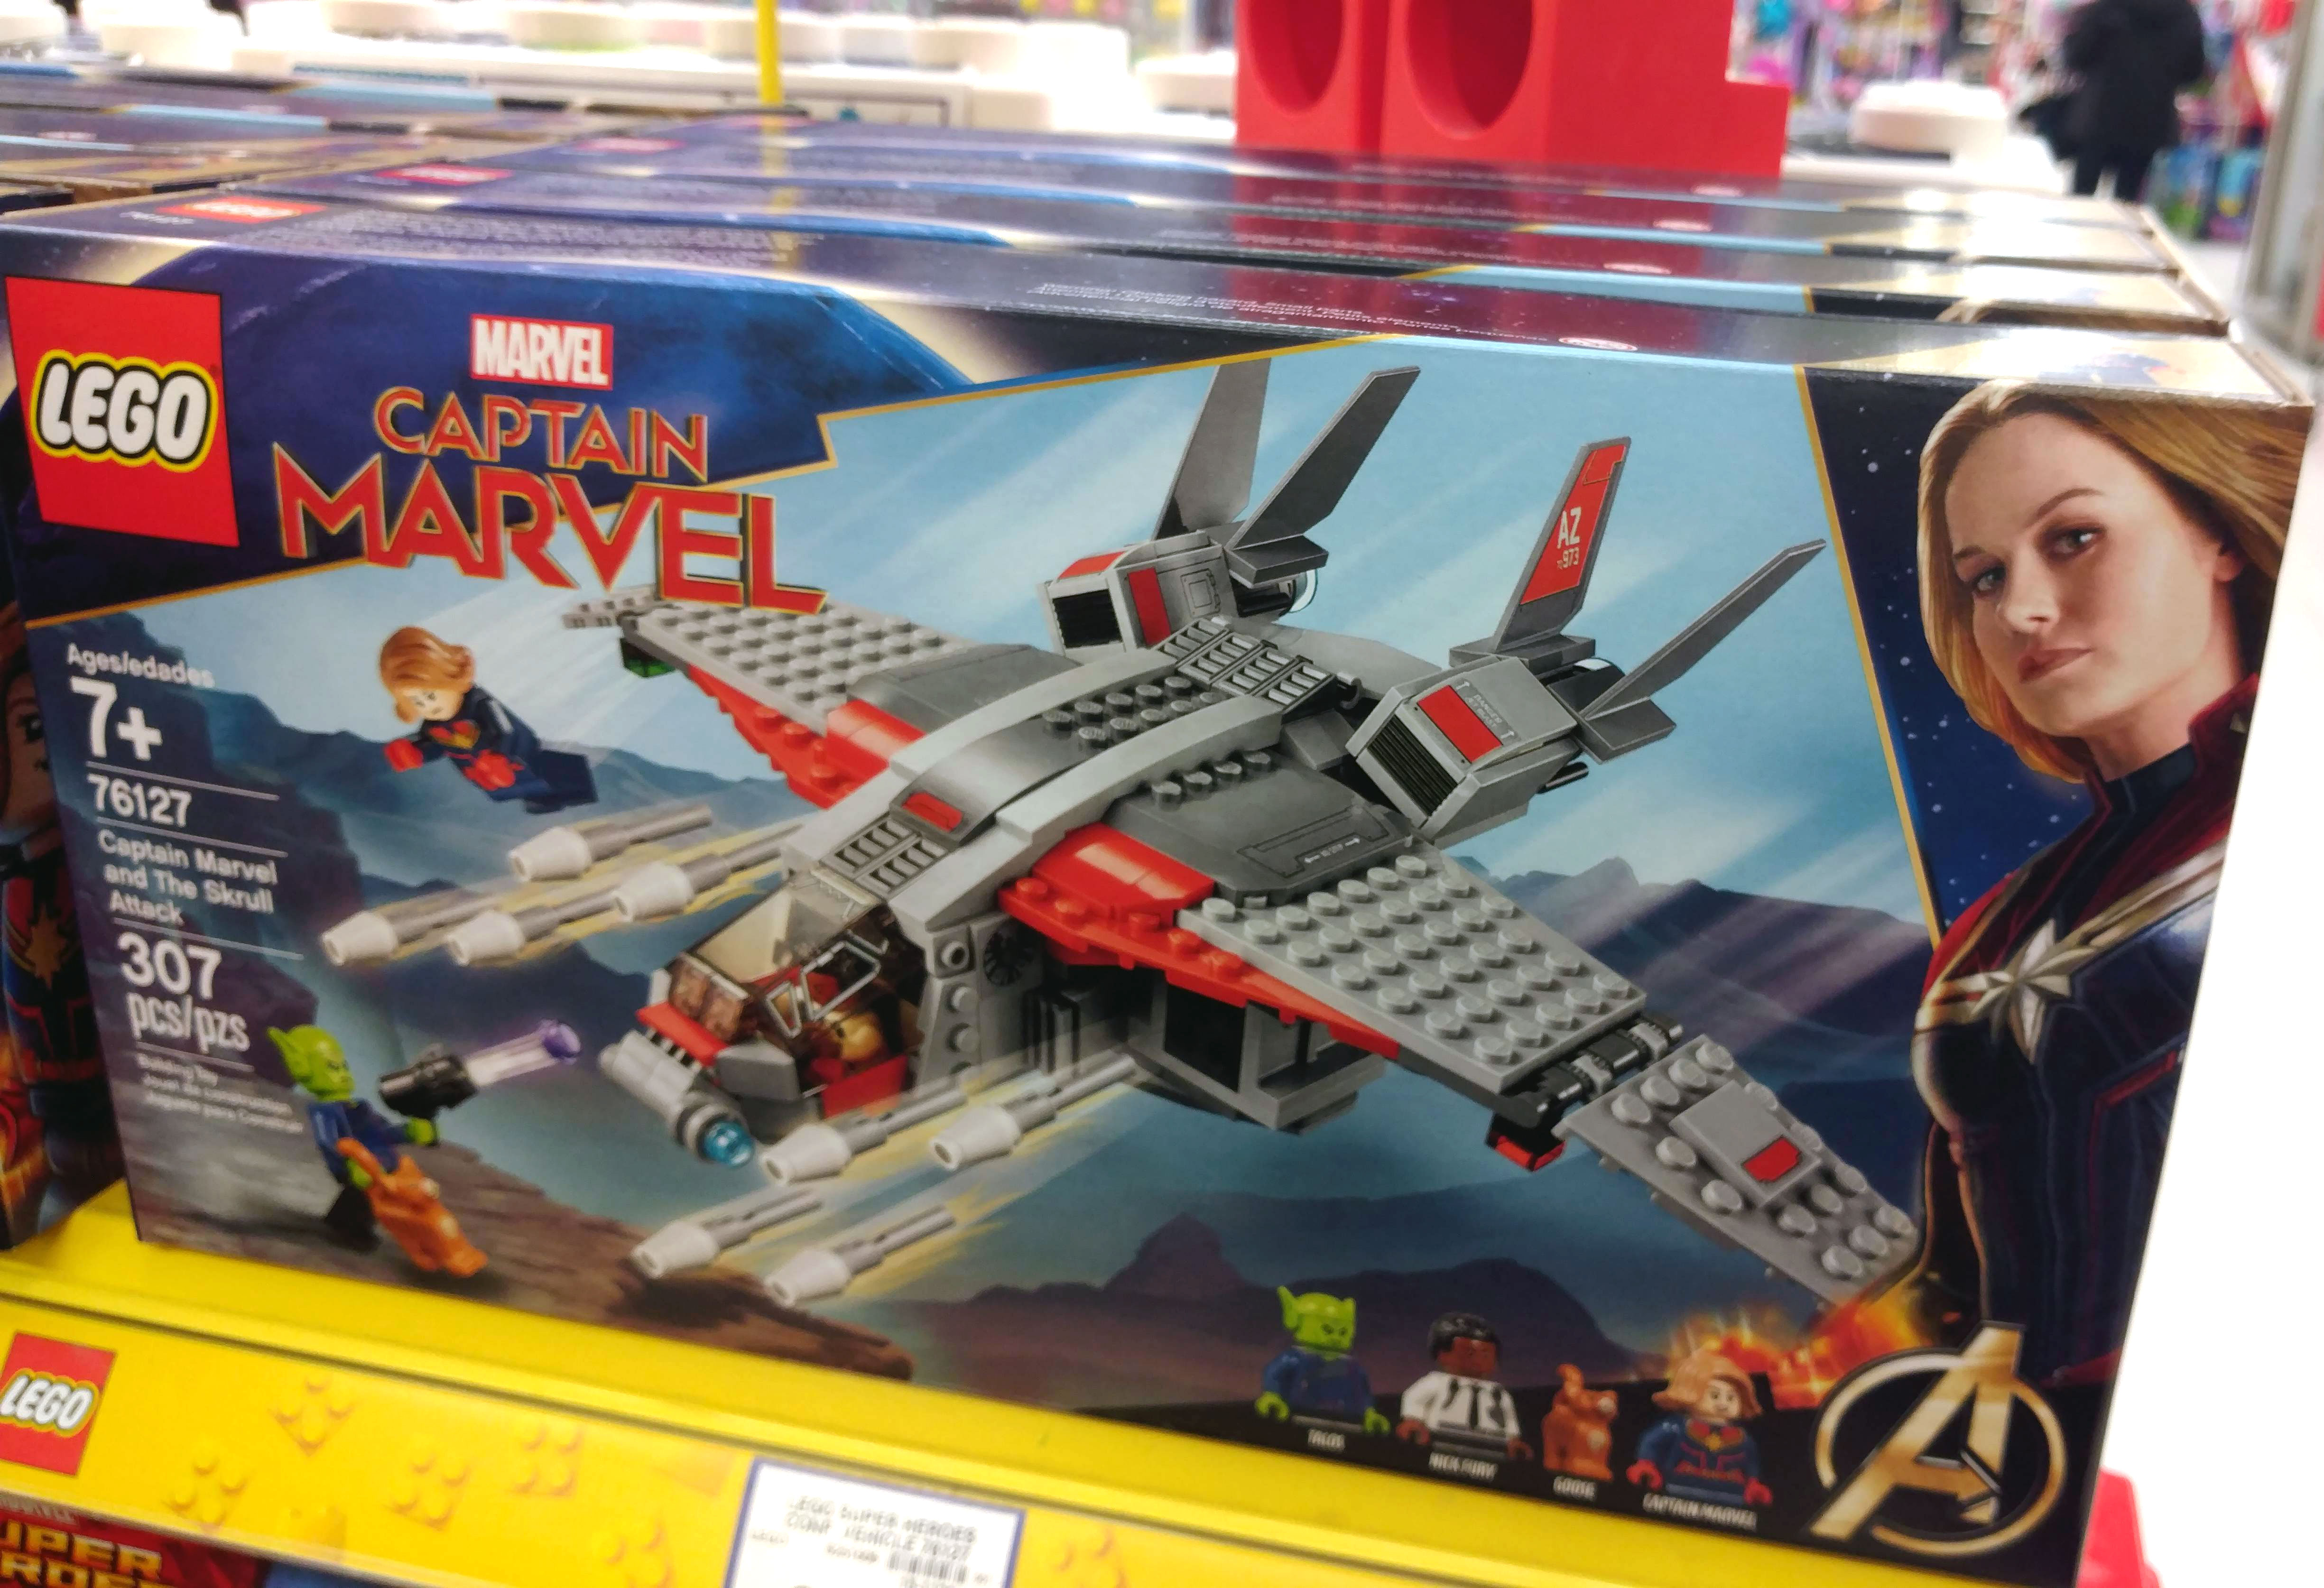 LEGO-Captain-Marvel-And-The-Skrull-Attack-(76127)